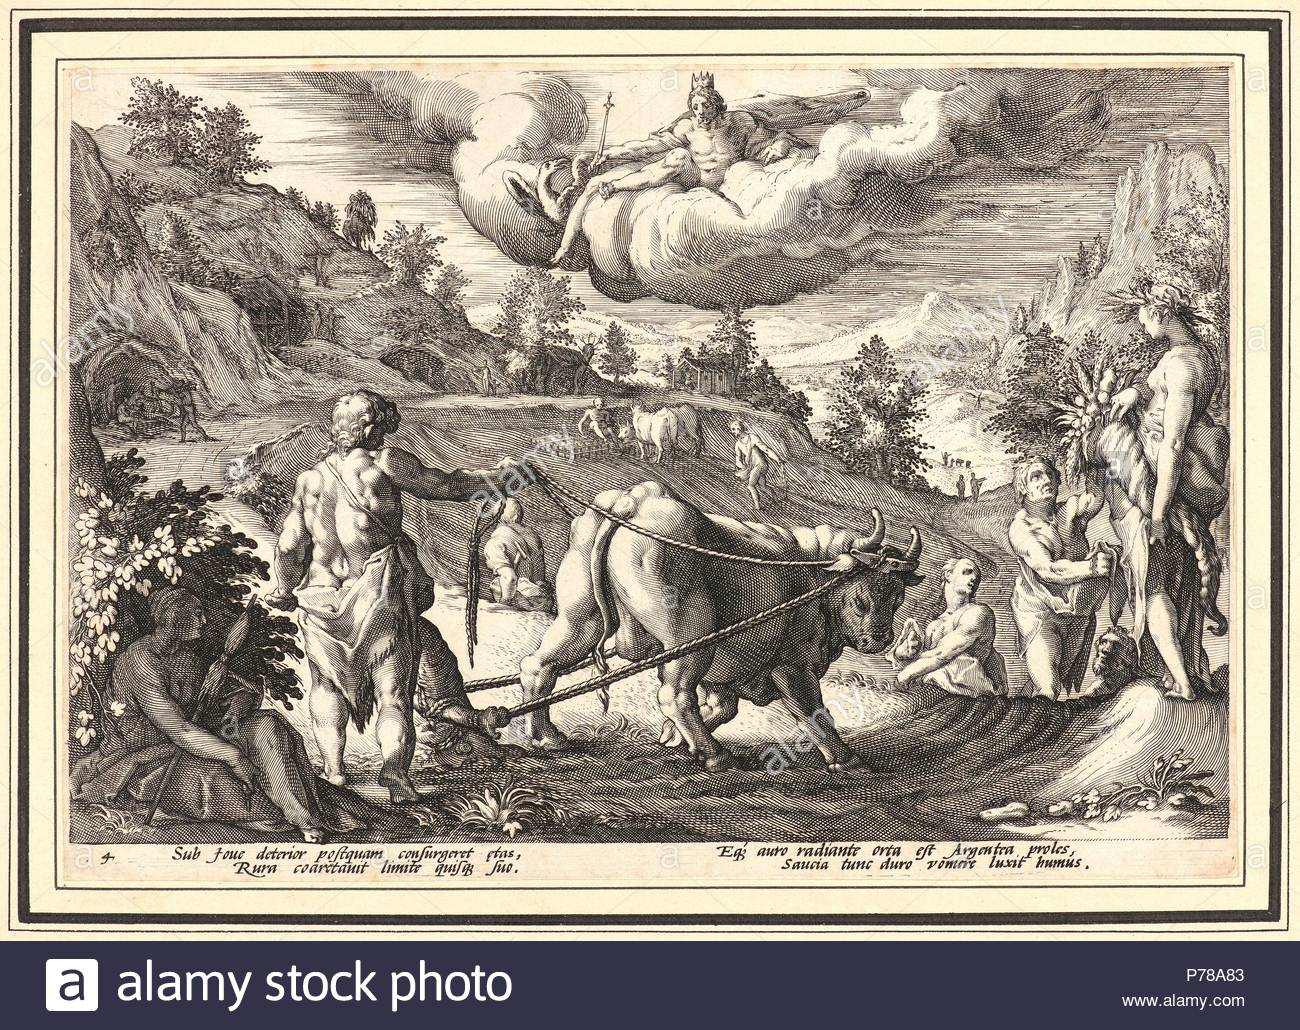 Anonymous after Hendrick Goltzius (Dutch, 1558 - 1617). The Age of Silver,  ca. 1589. From Metamorphoses. Engraving on wove paper.